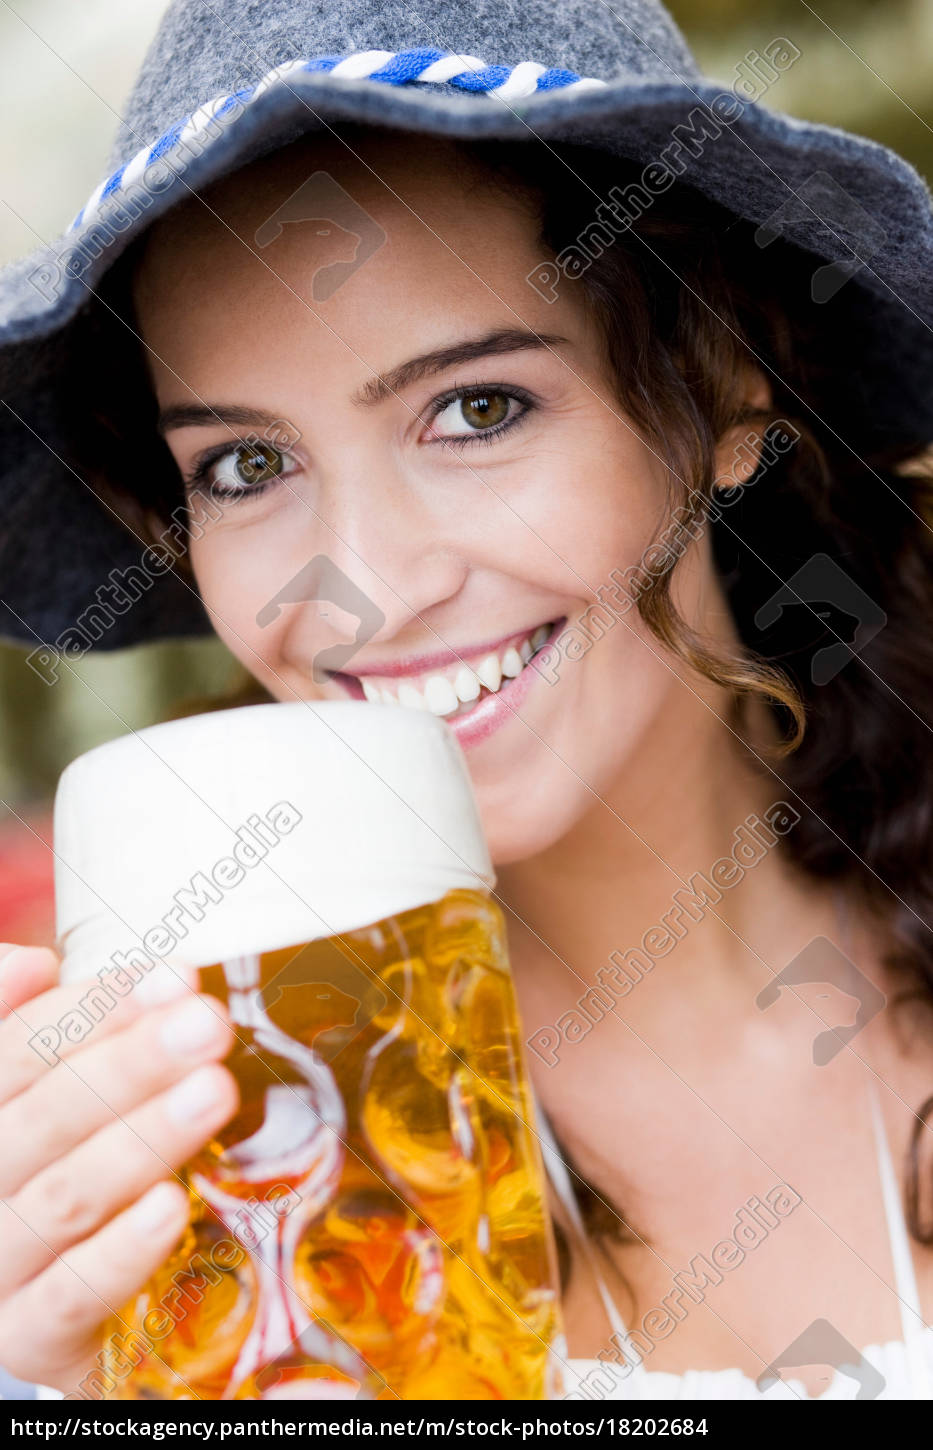 young, woman, with, hat, drinking, beer - 18202684